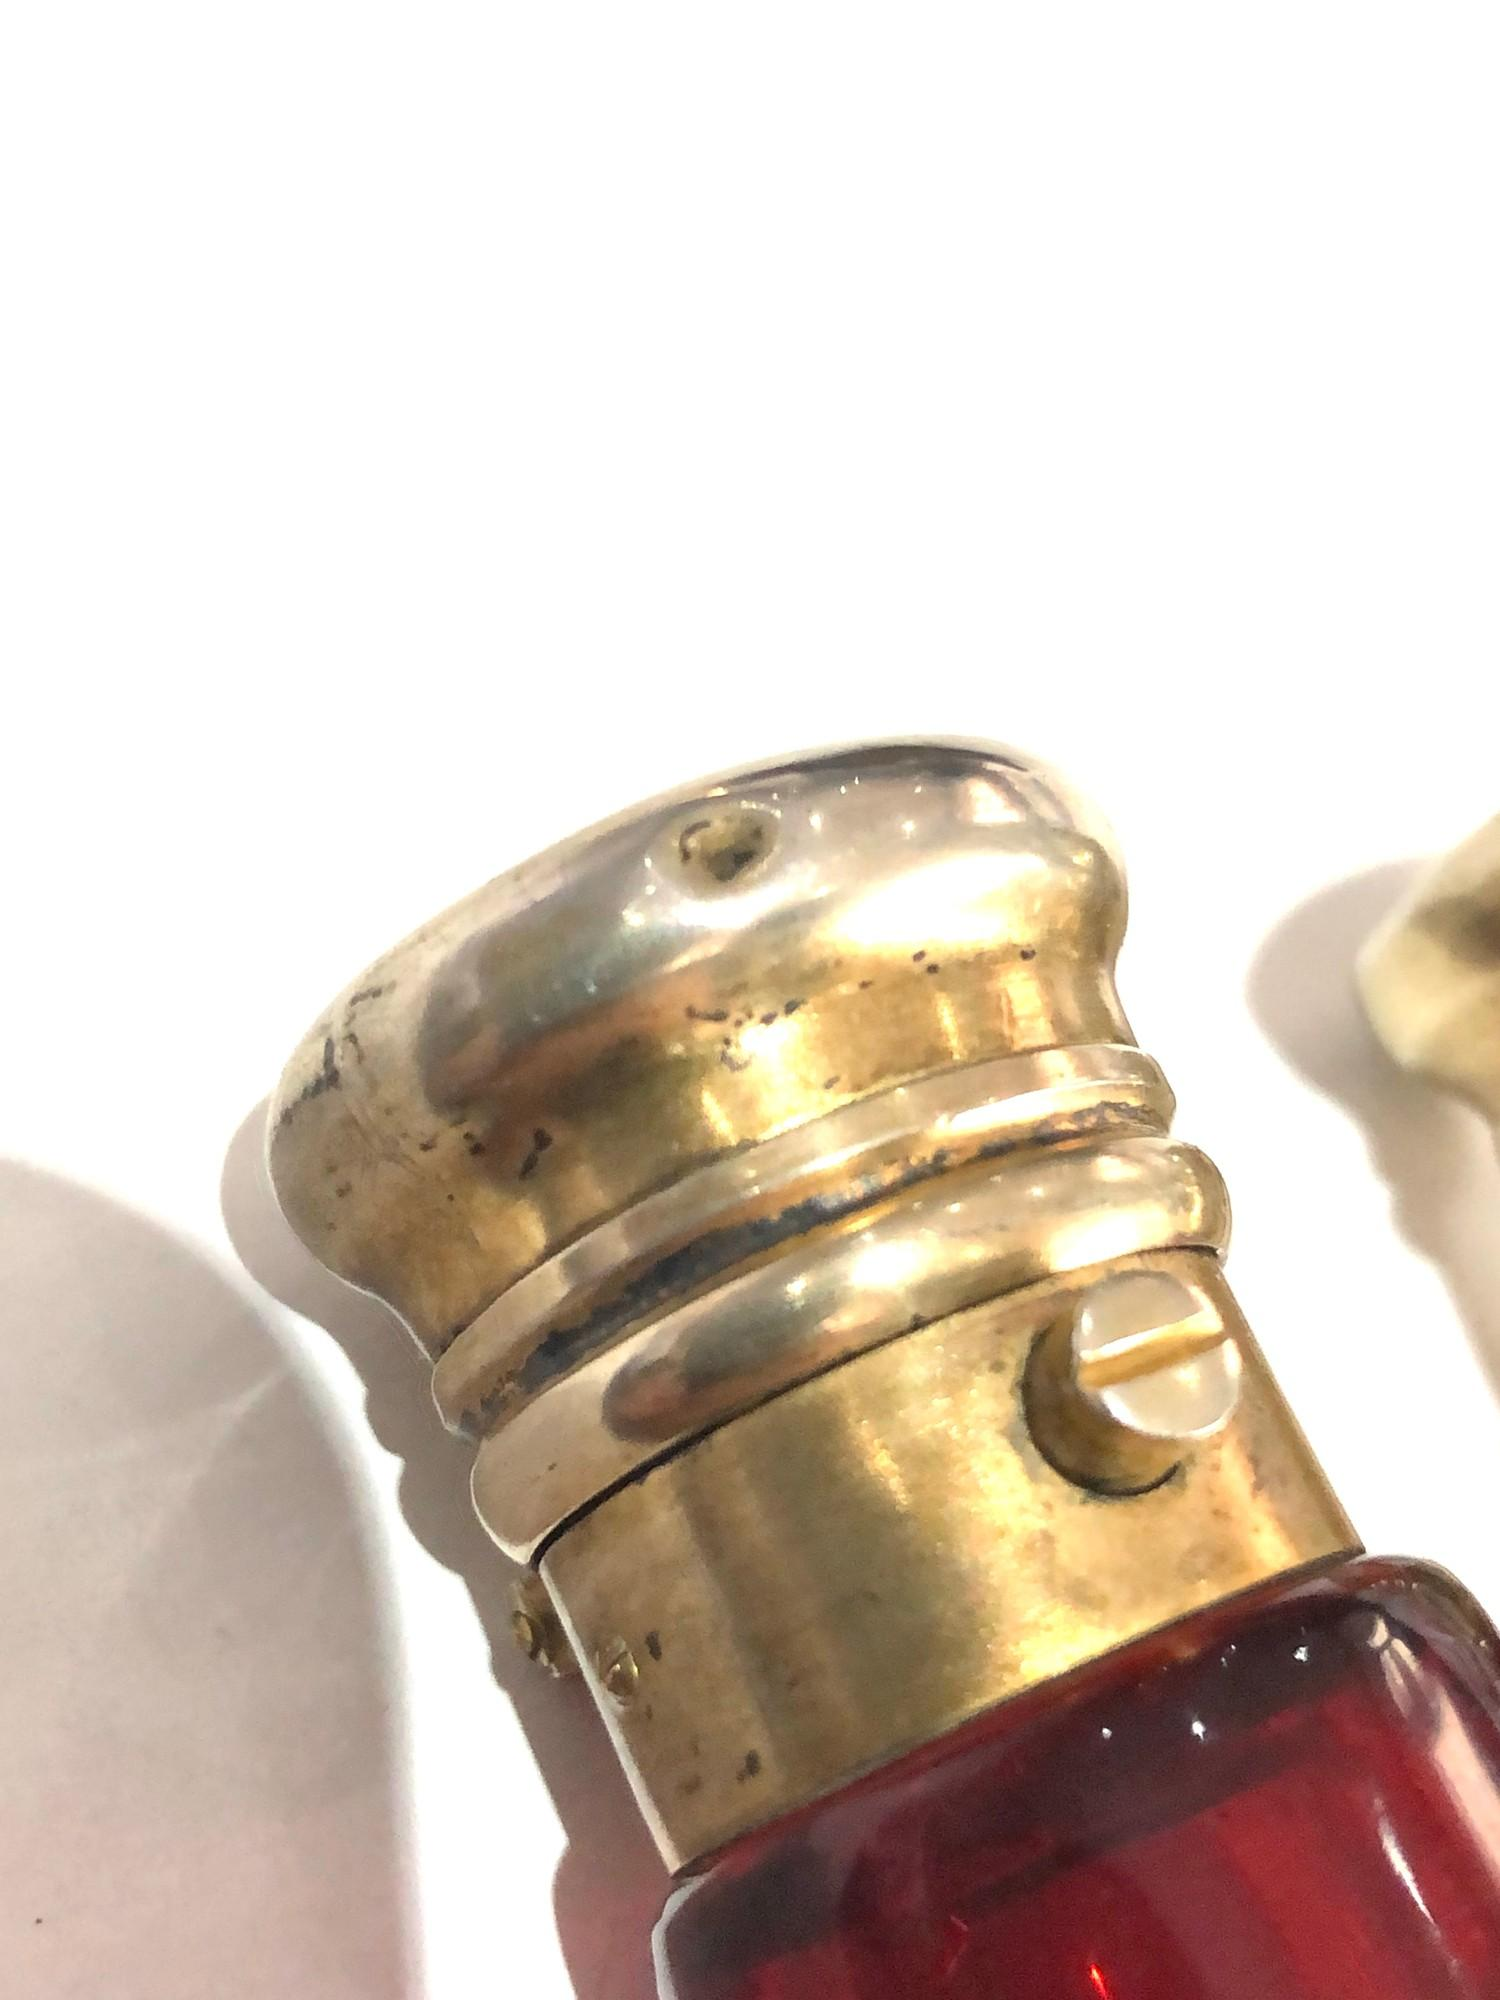 Rare antique ruby glass and silver mounted novelty binoculars scent bottle in original box by Maw - Image 10 of 11